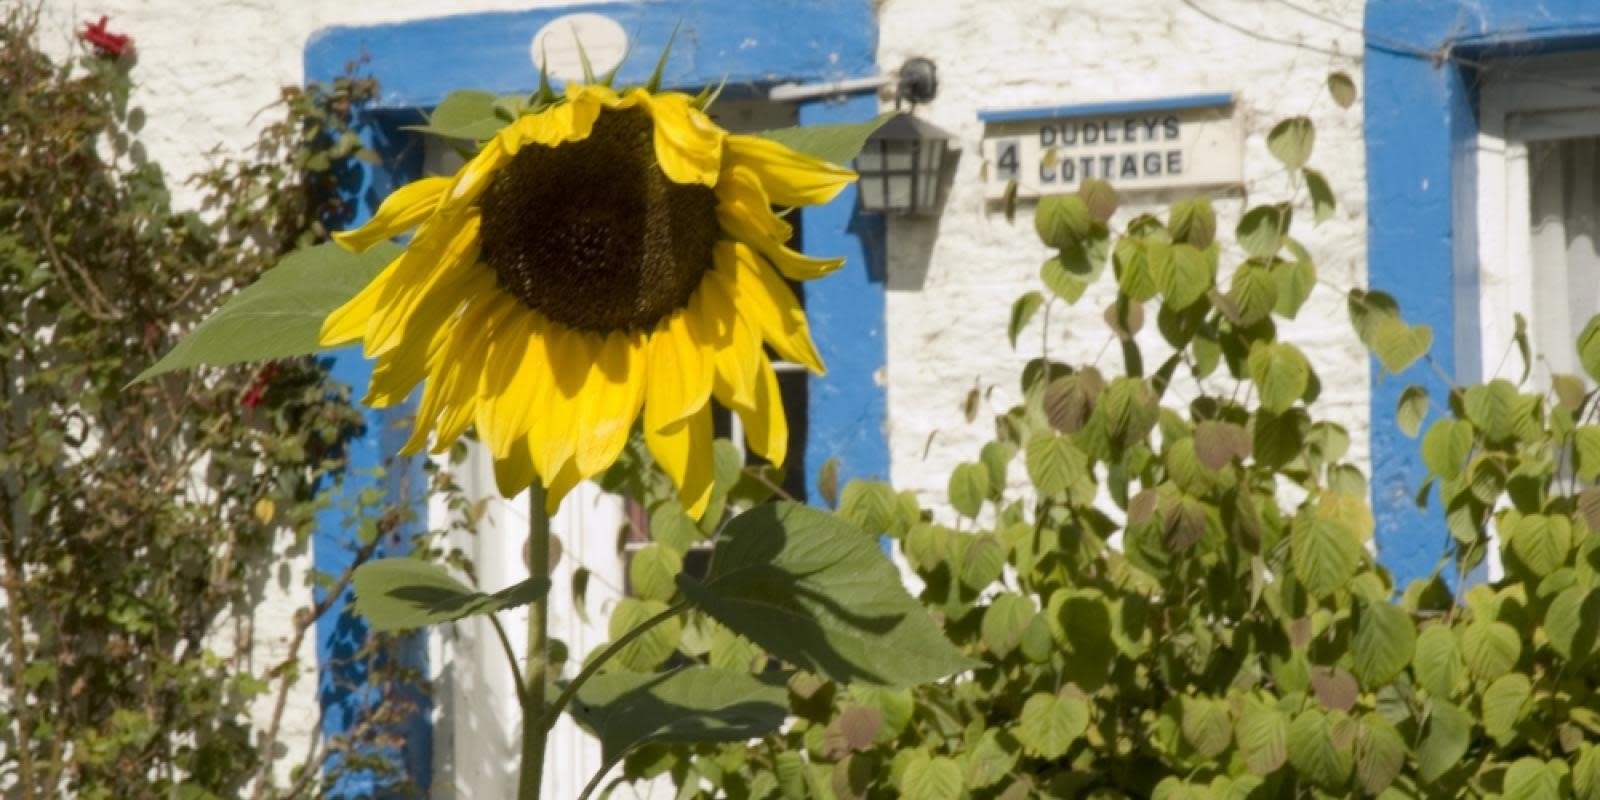 Sunflower at Dudley's Cottage